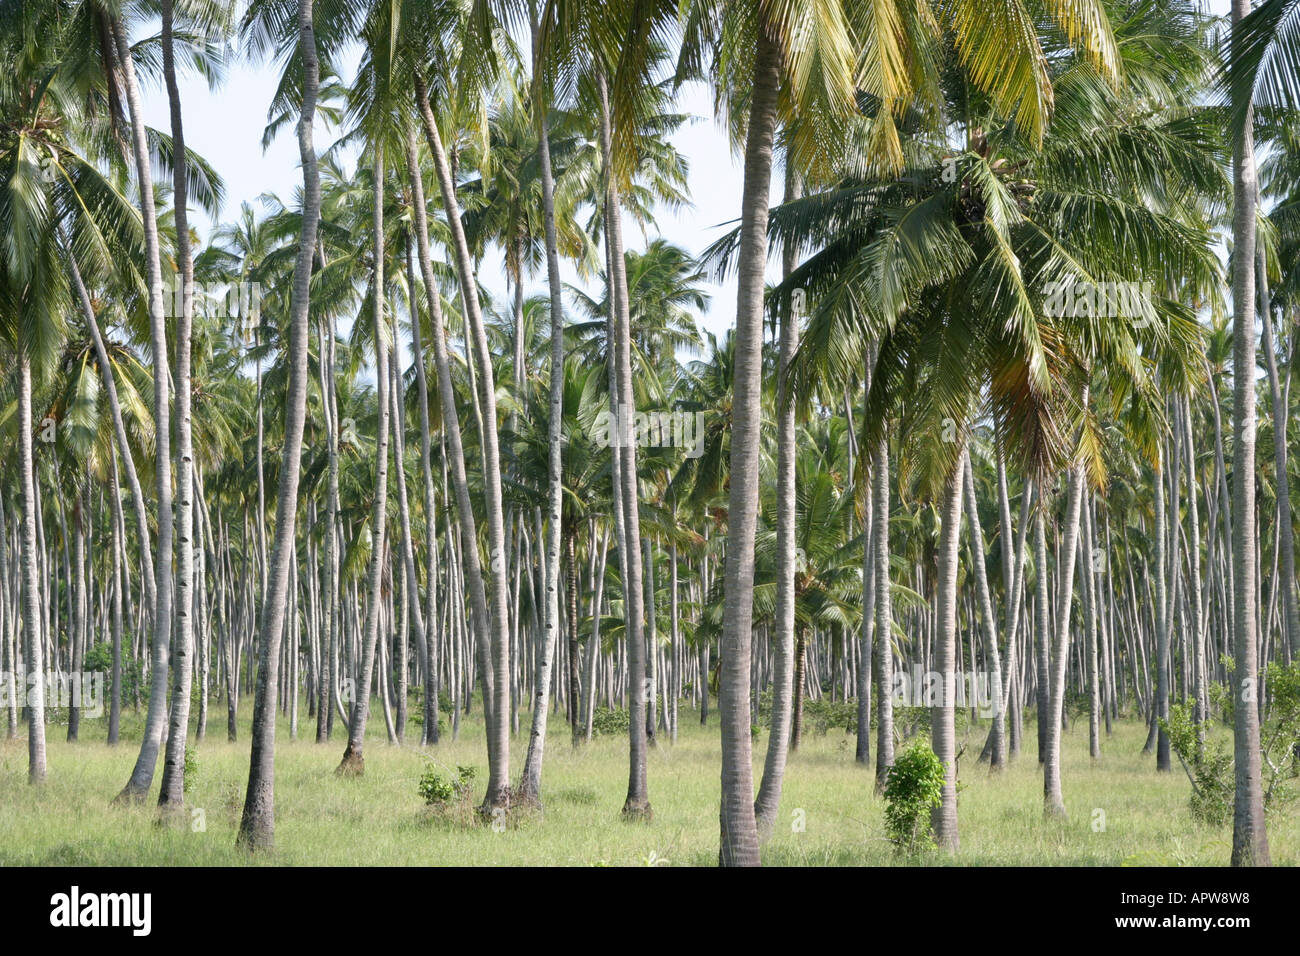 kokospalme cocos nucifera plantage kenia stockfoto bild 9067415 alamy. Black Bedroom Furniture Sets. Home Design Ideas